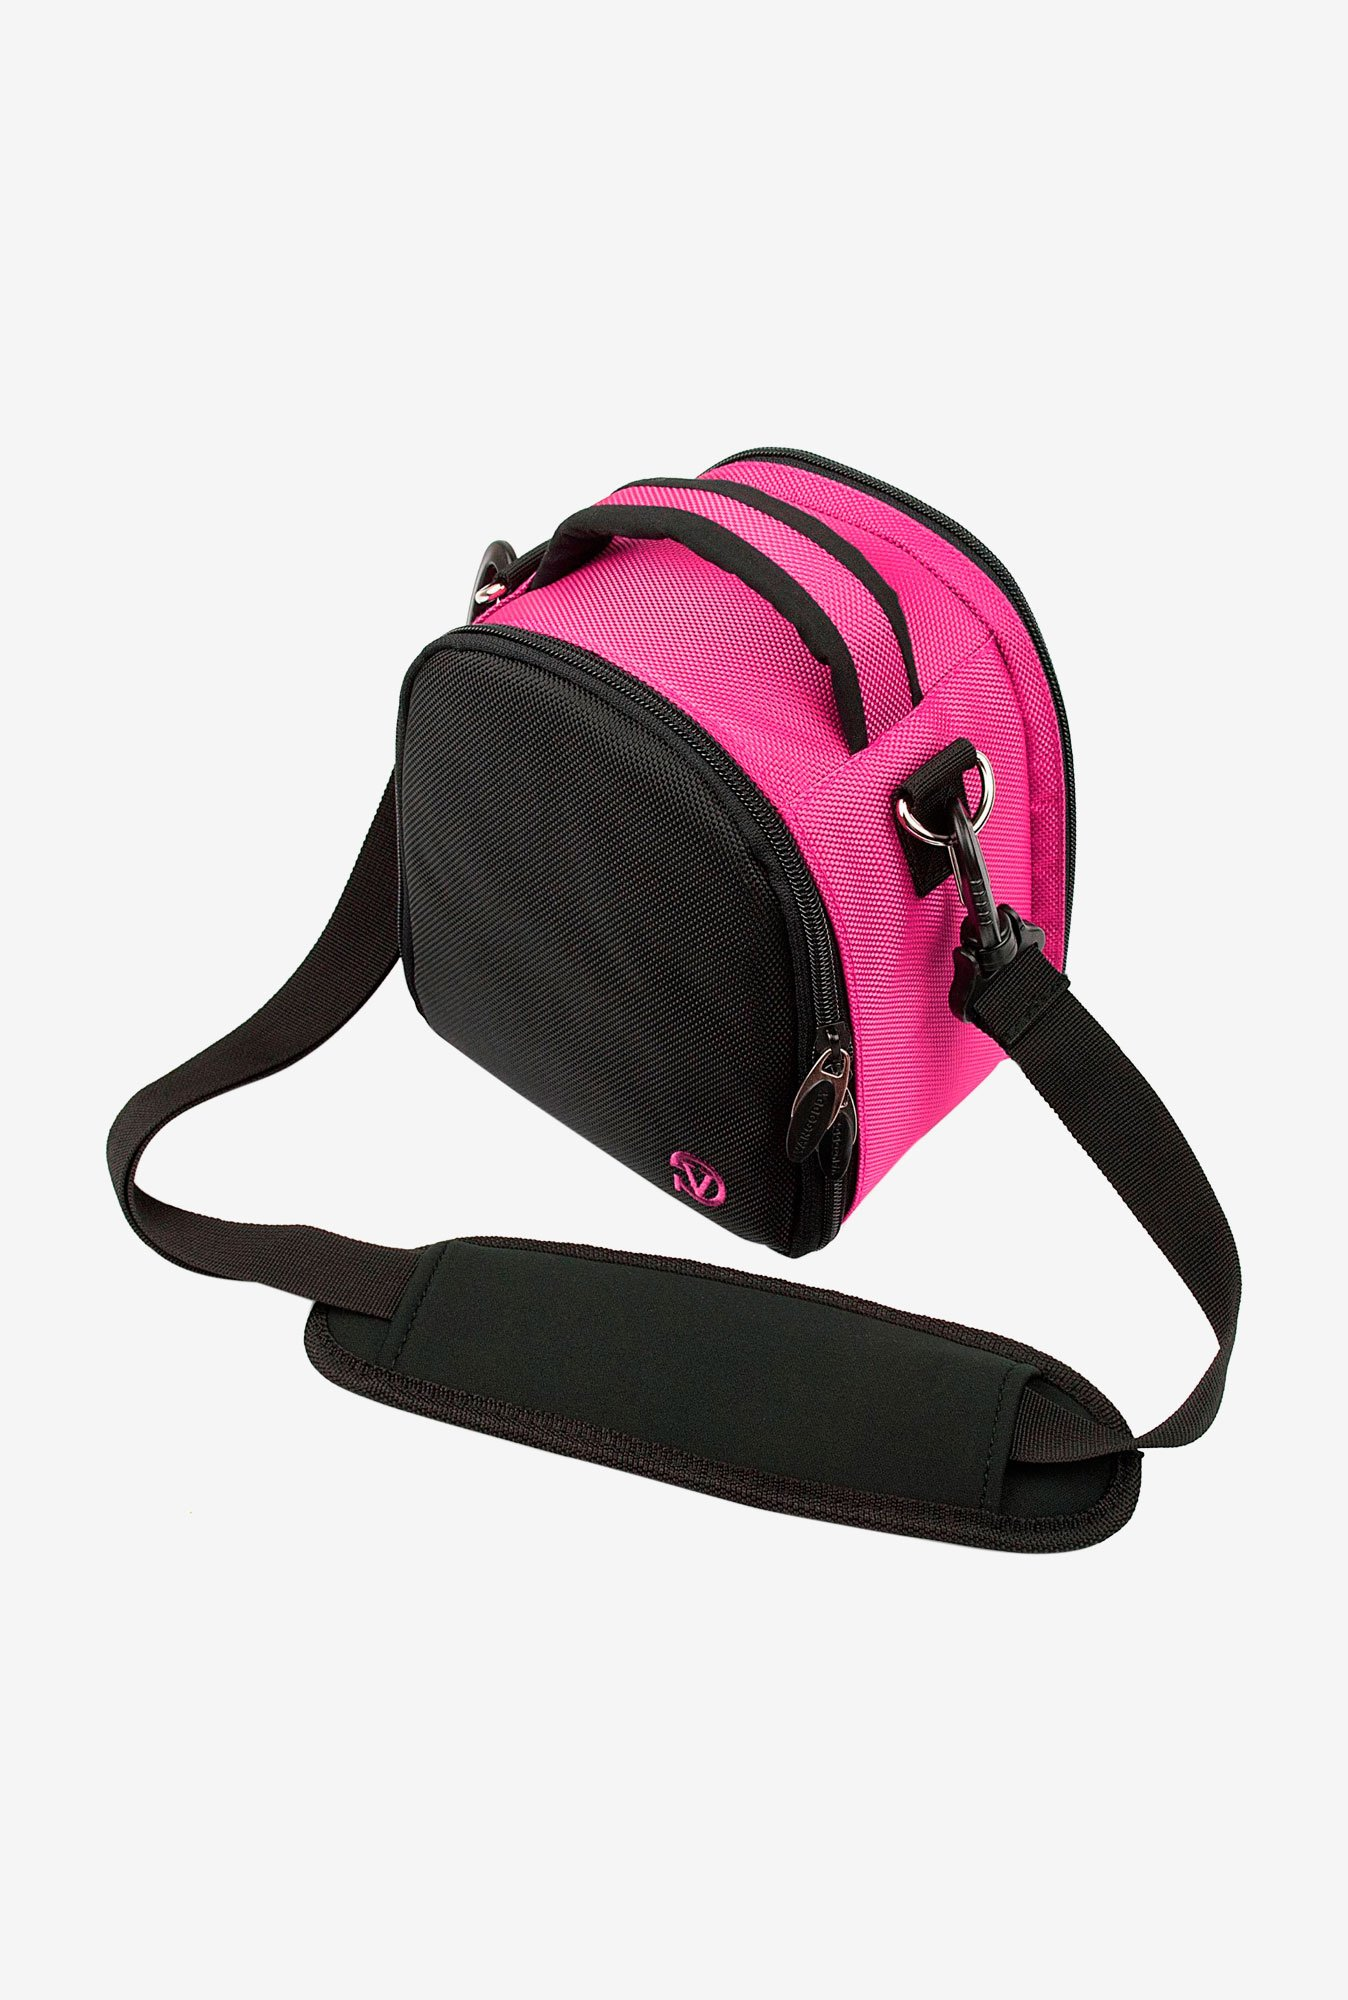 Vangoddy Compact LAUREL 30 Camera Bag Magenta Hot Pink